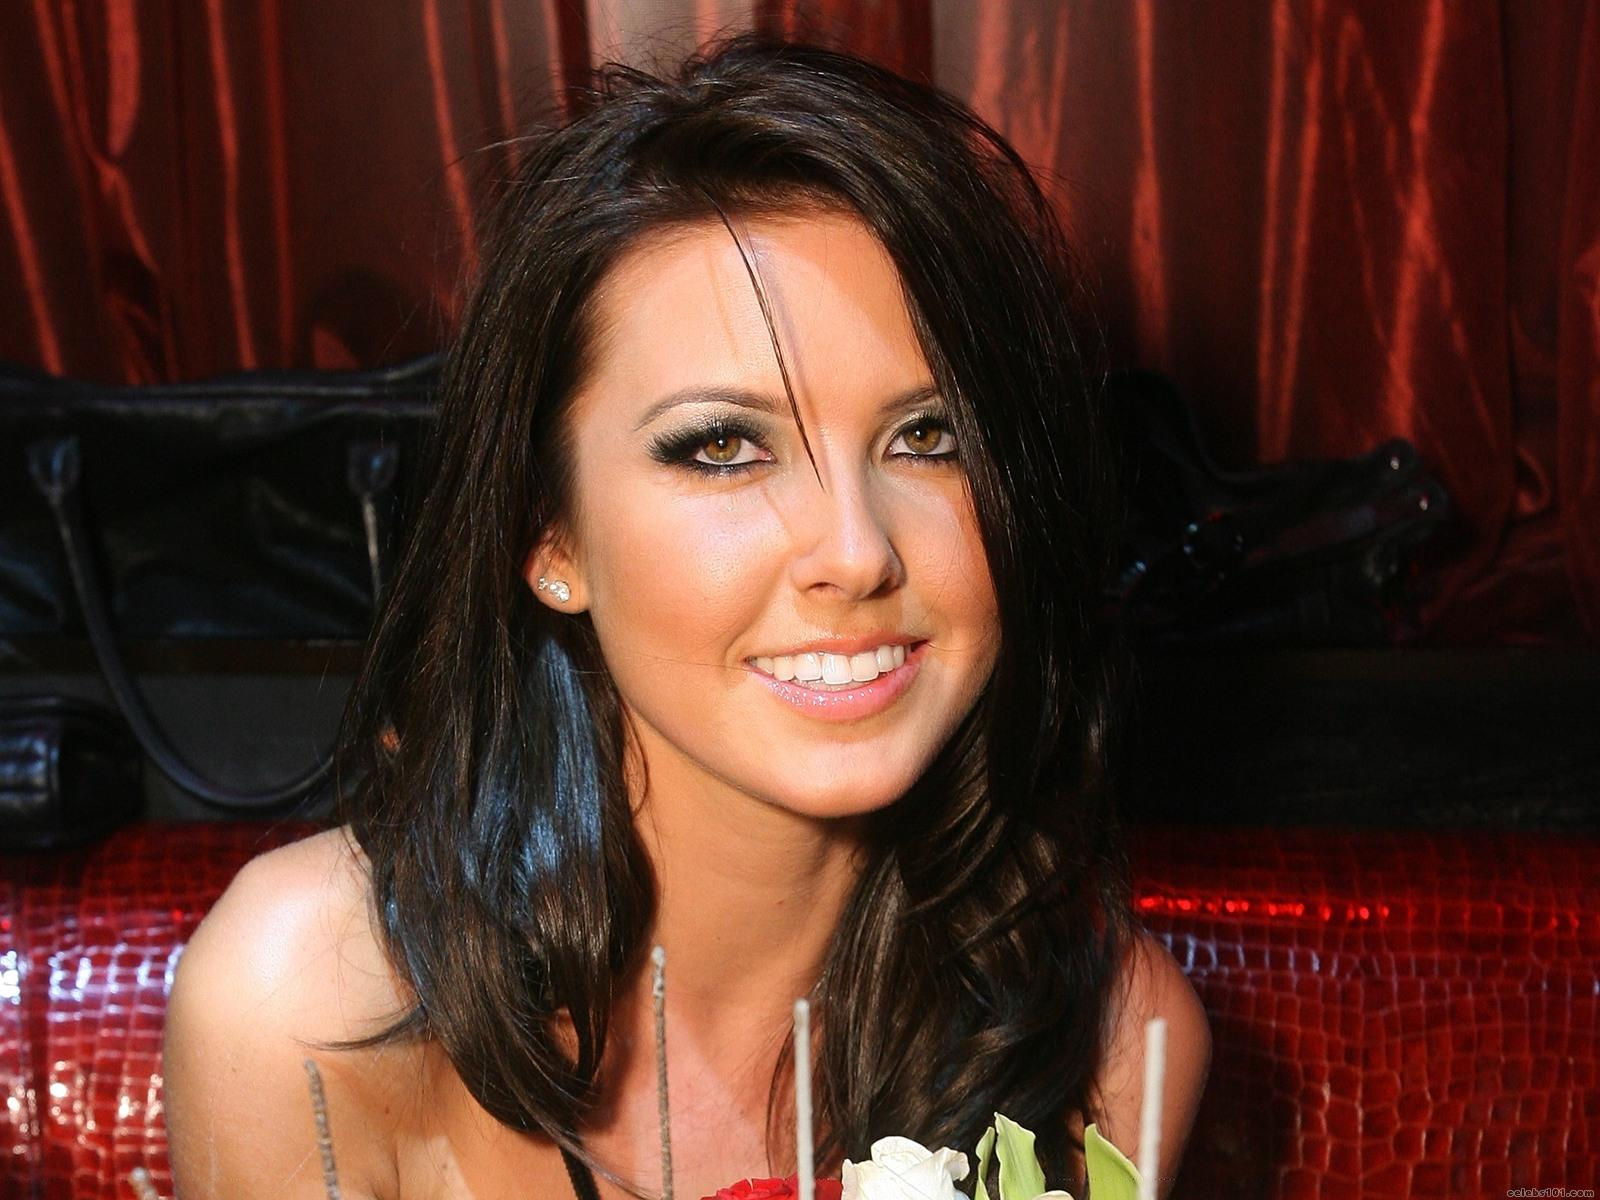 Audrina Patridge - Photo Actress